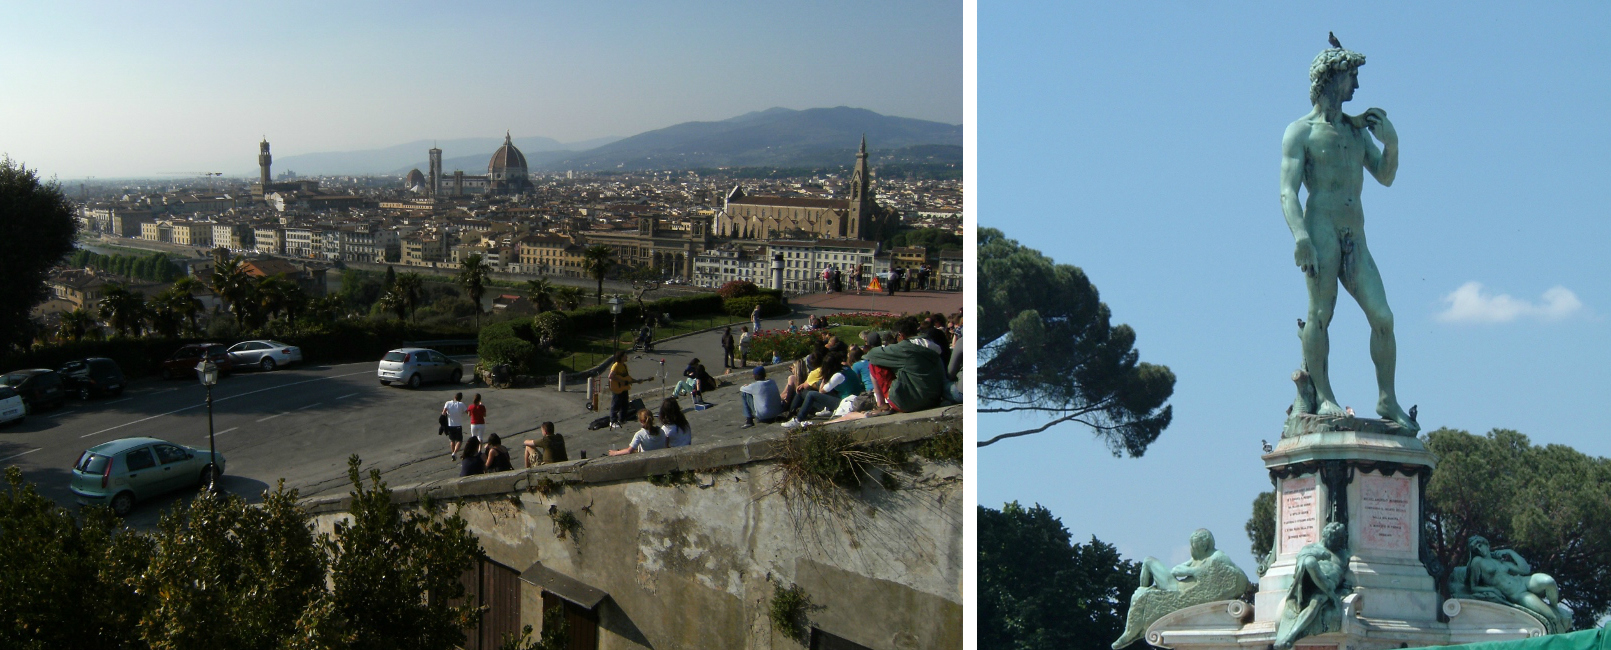 Italy - Florence - Piazzale Michelangelo - 1.1